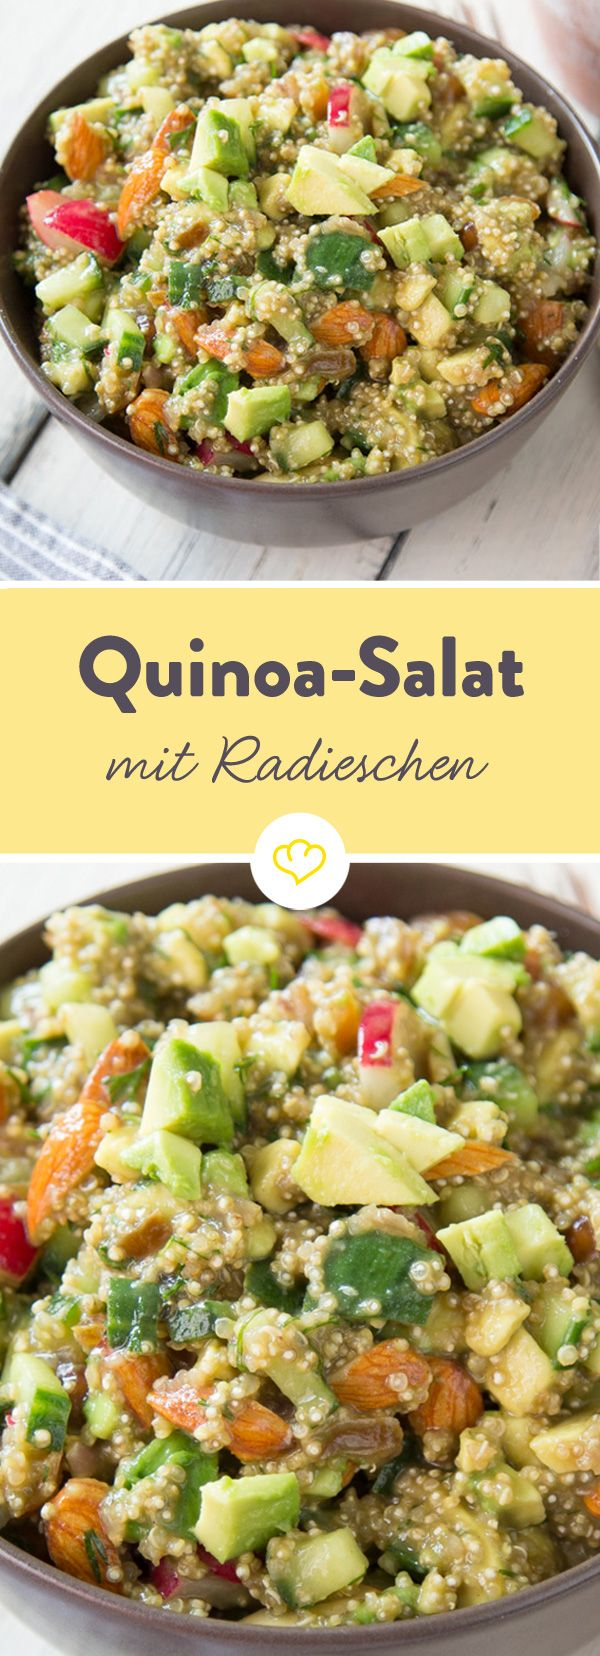 Photo of Quinoa salad with avocado and radishes